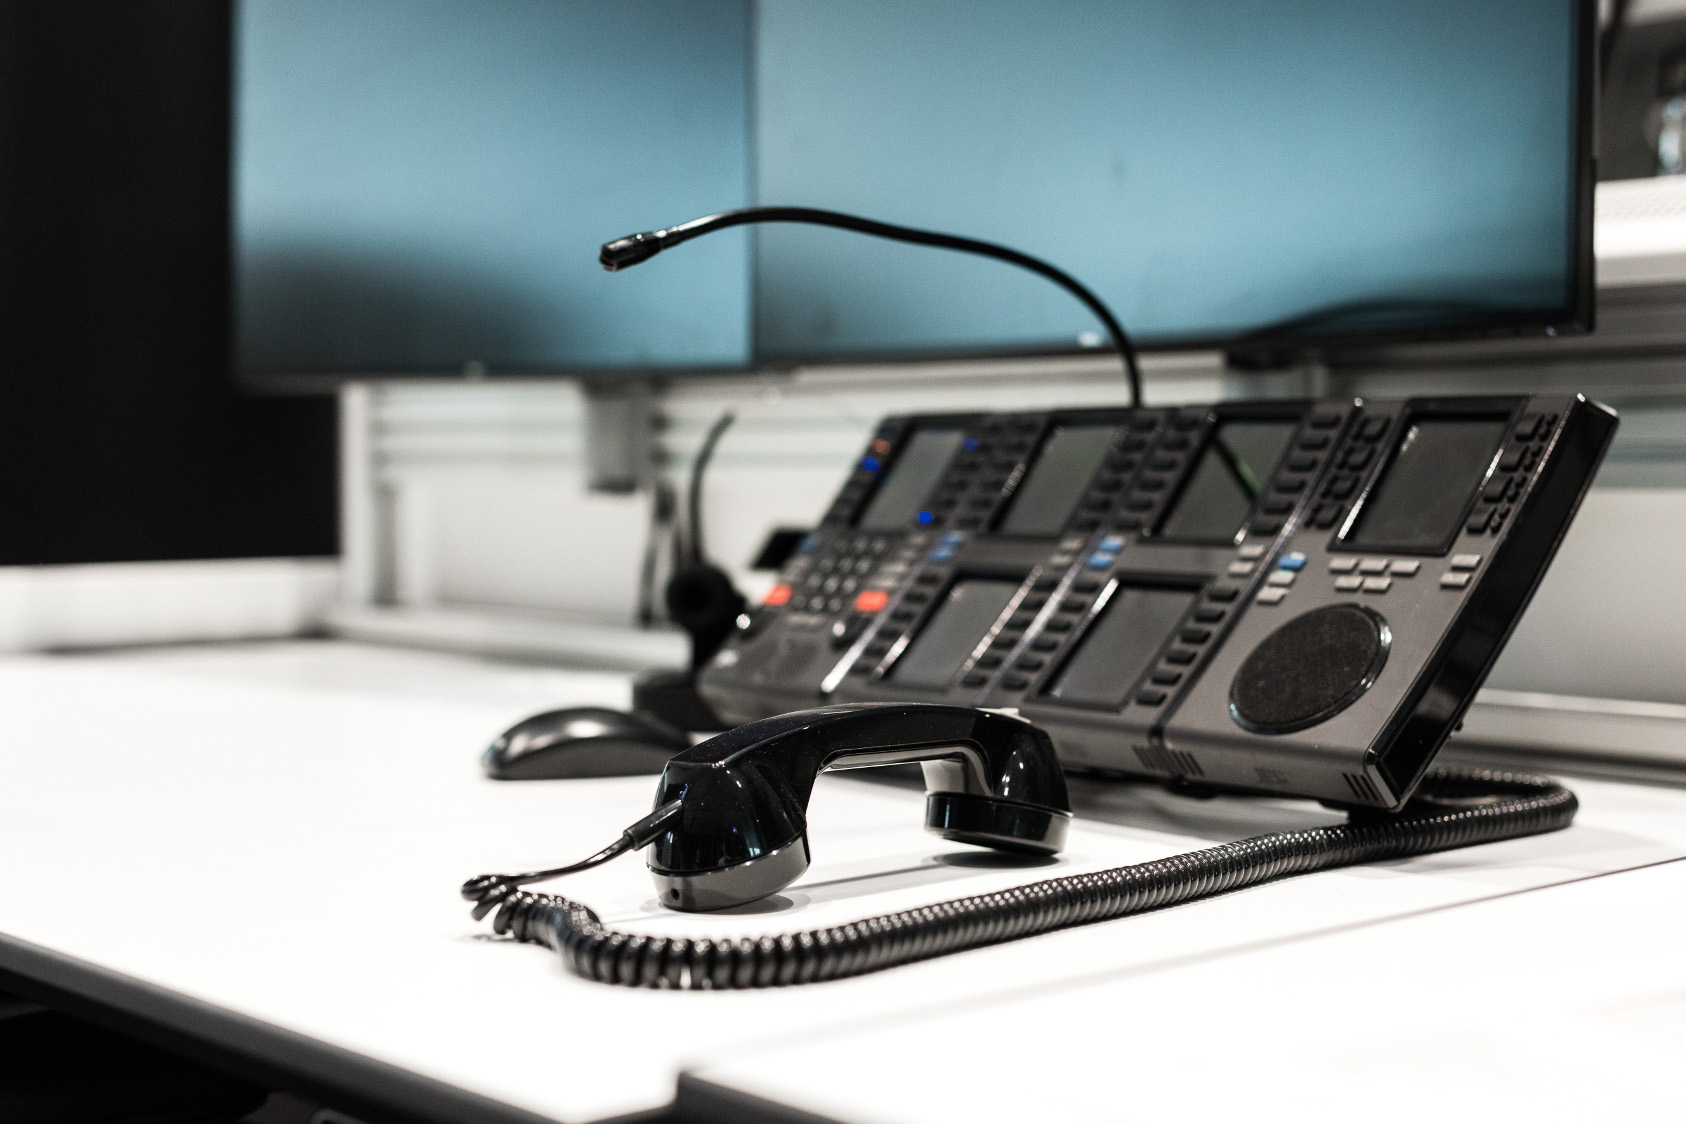 Telefphone_System_on_Trading_Floor